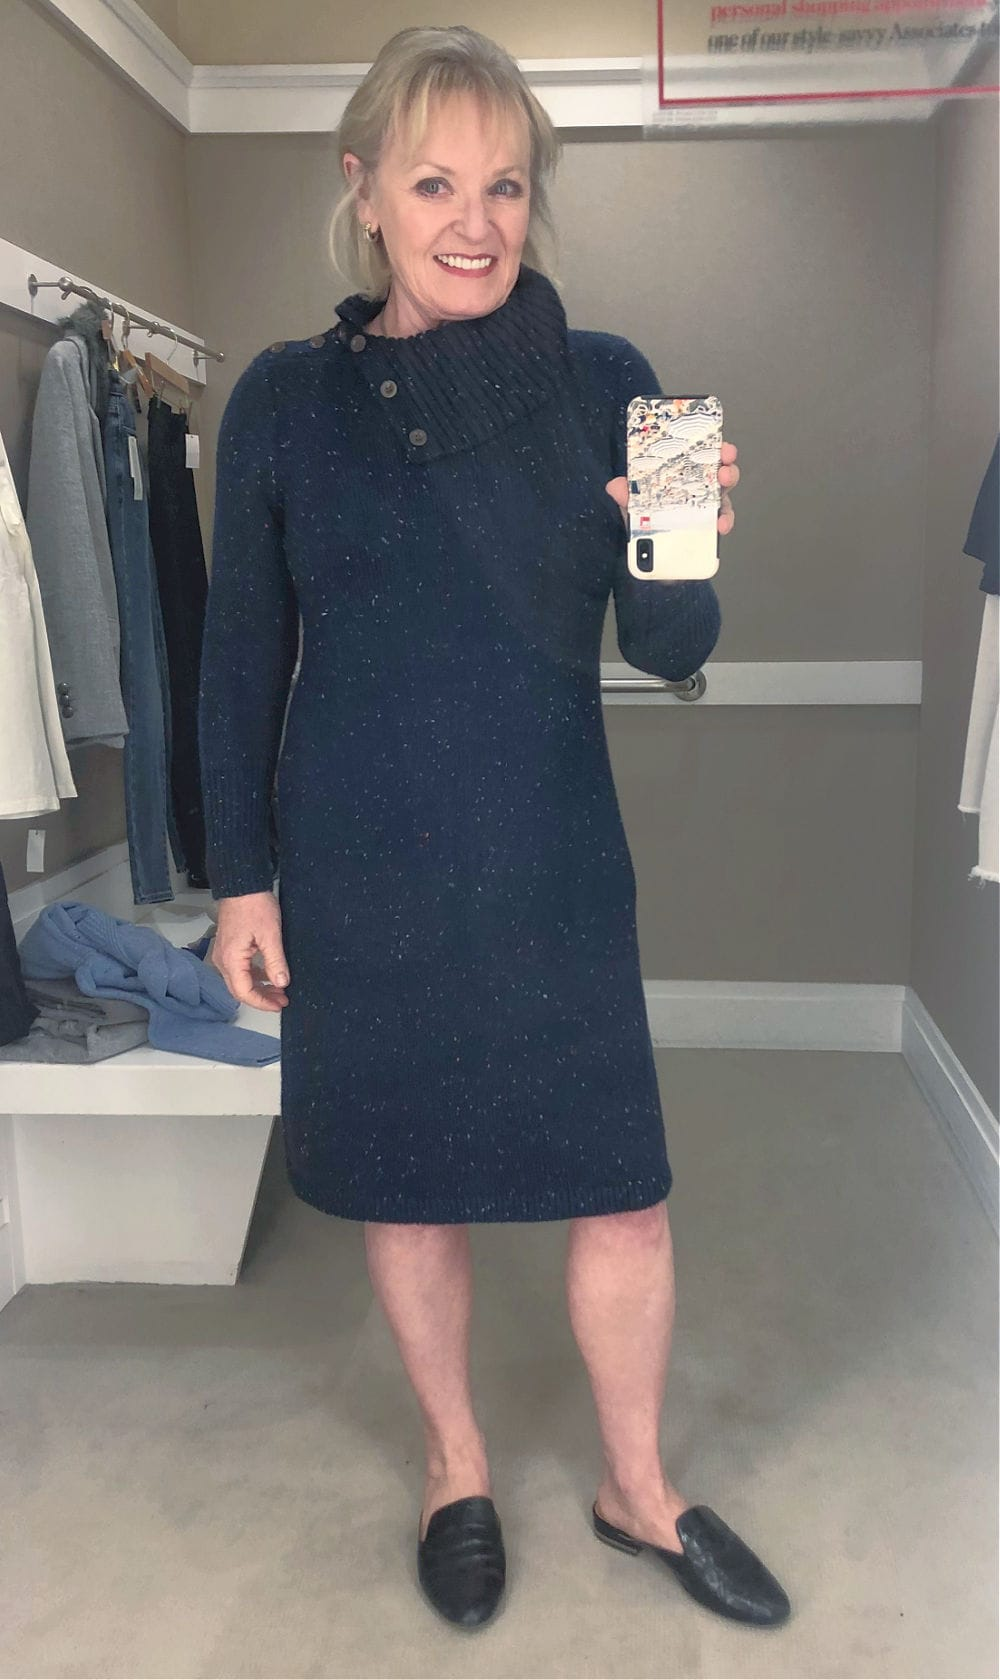 fashion blogger jennifer of a well styled life wearing sweater dress from Talbots